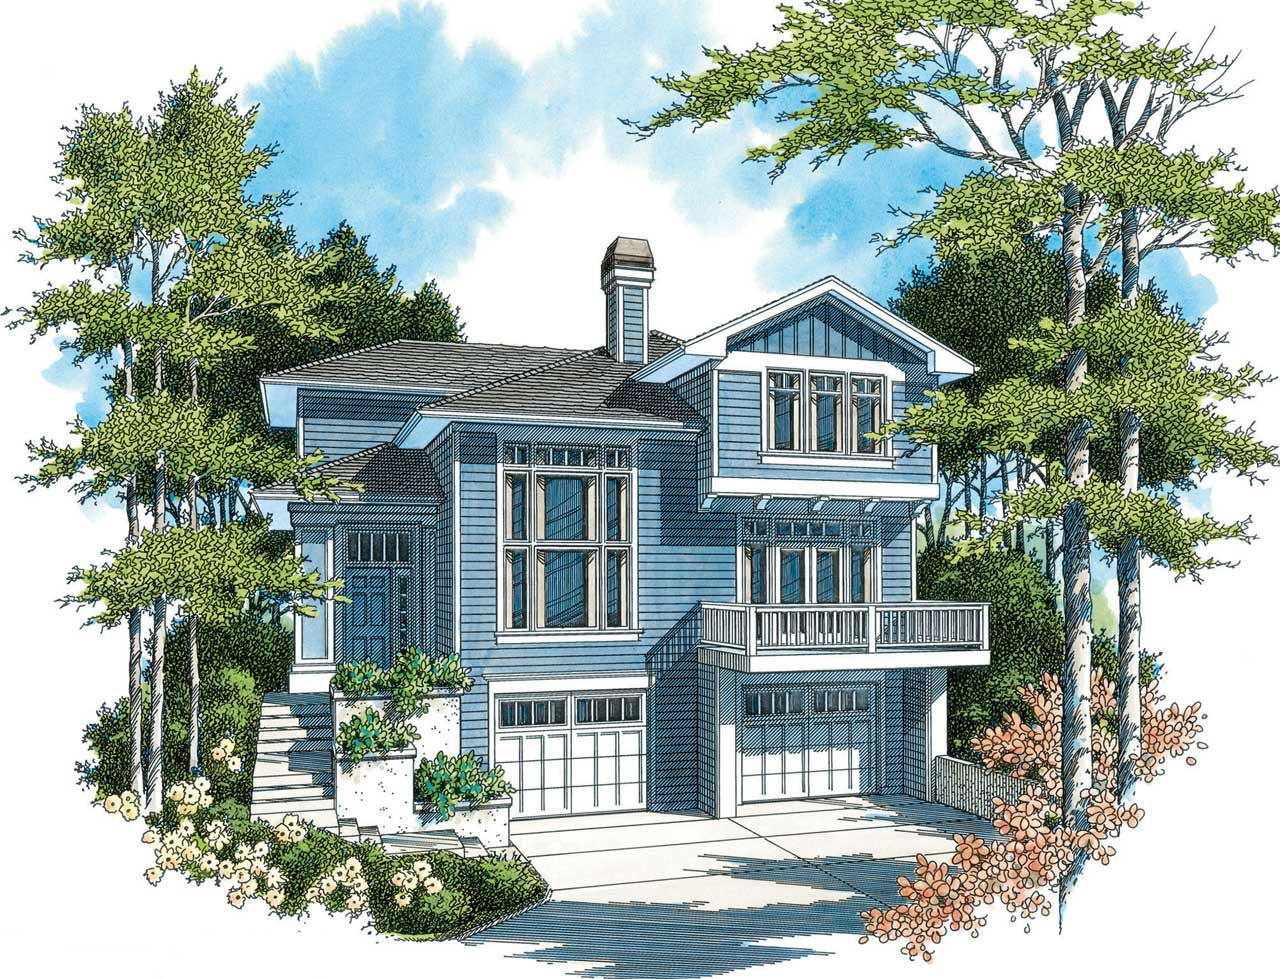 Craftsman Style House Plans Plan: 74-271